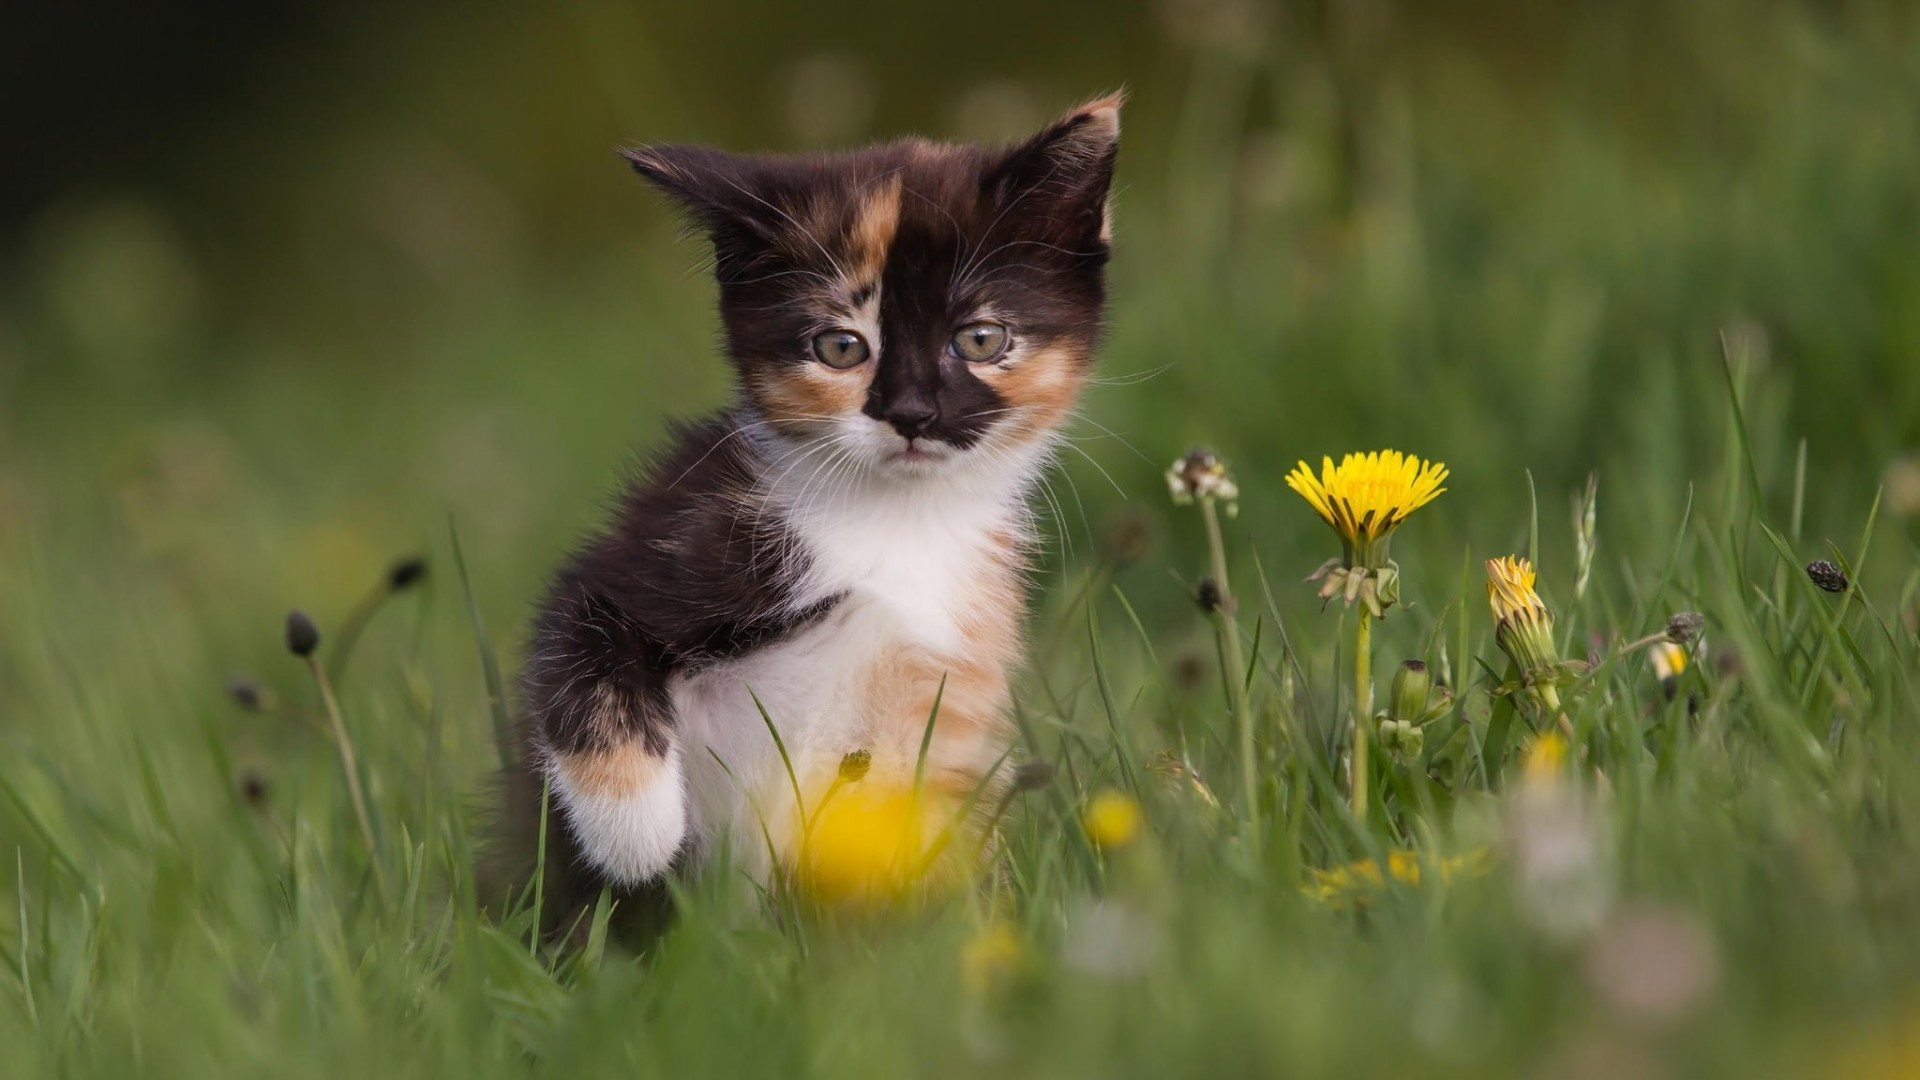 Wallpaper Hd For Desktop Full Screen Cute Baby Cat Animals Baby Animals Yellow Flowers Wallpapers Hd